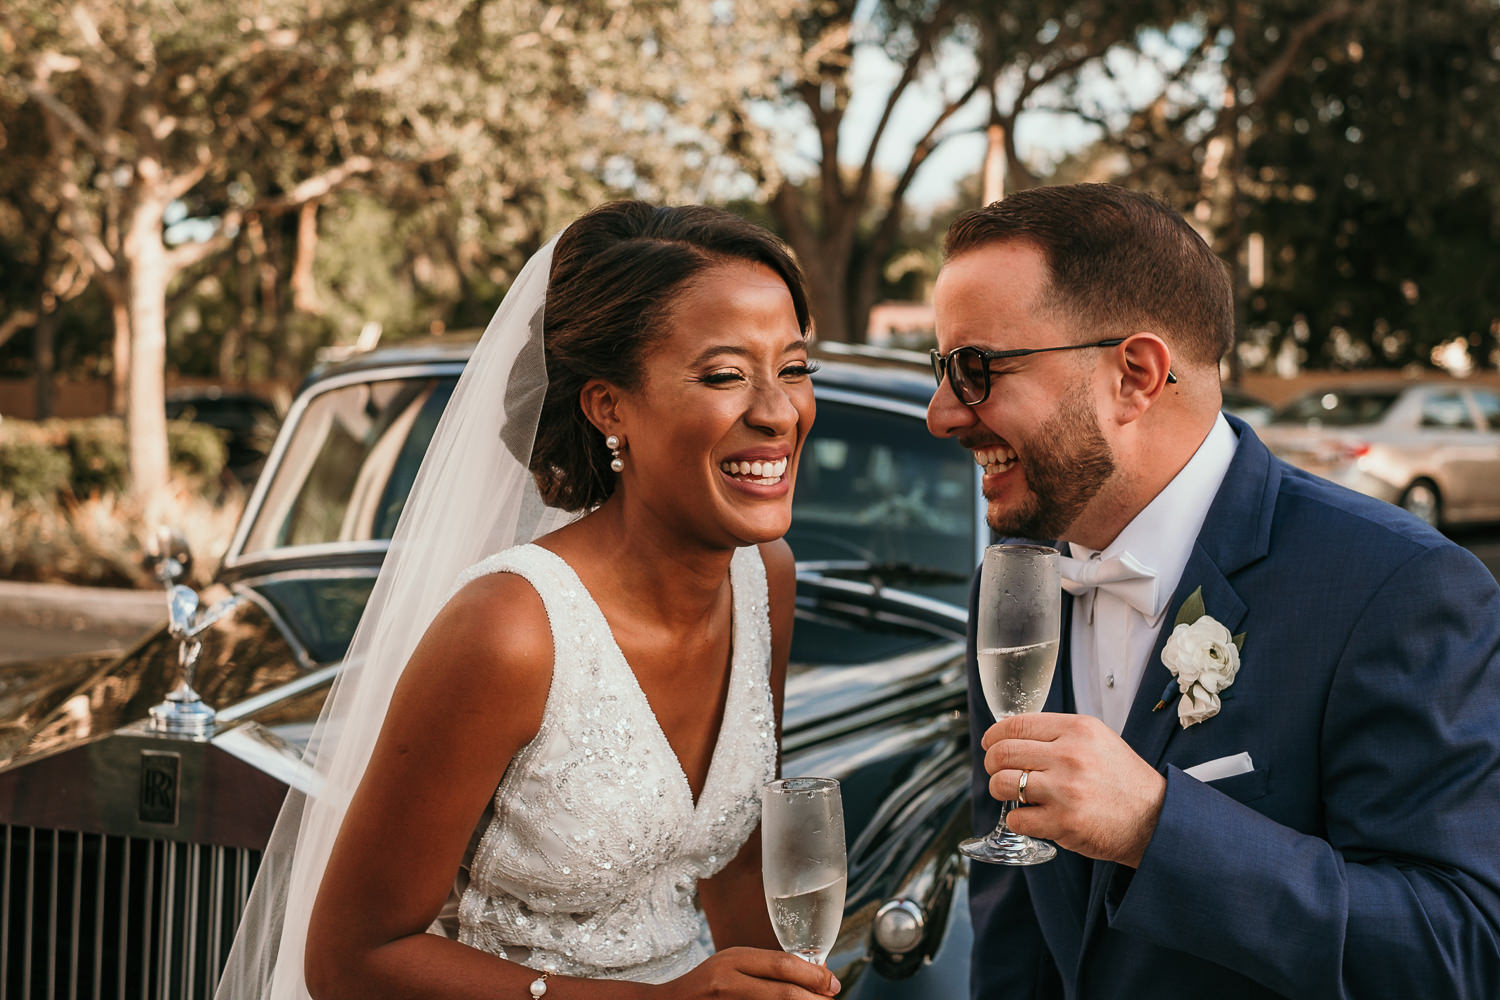 newlyweds laughing with each other holding champagne glasses